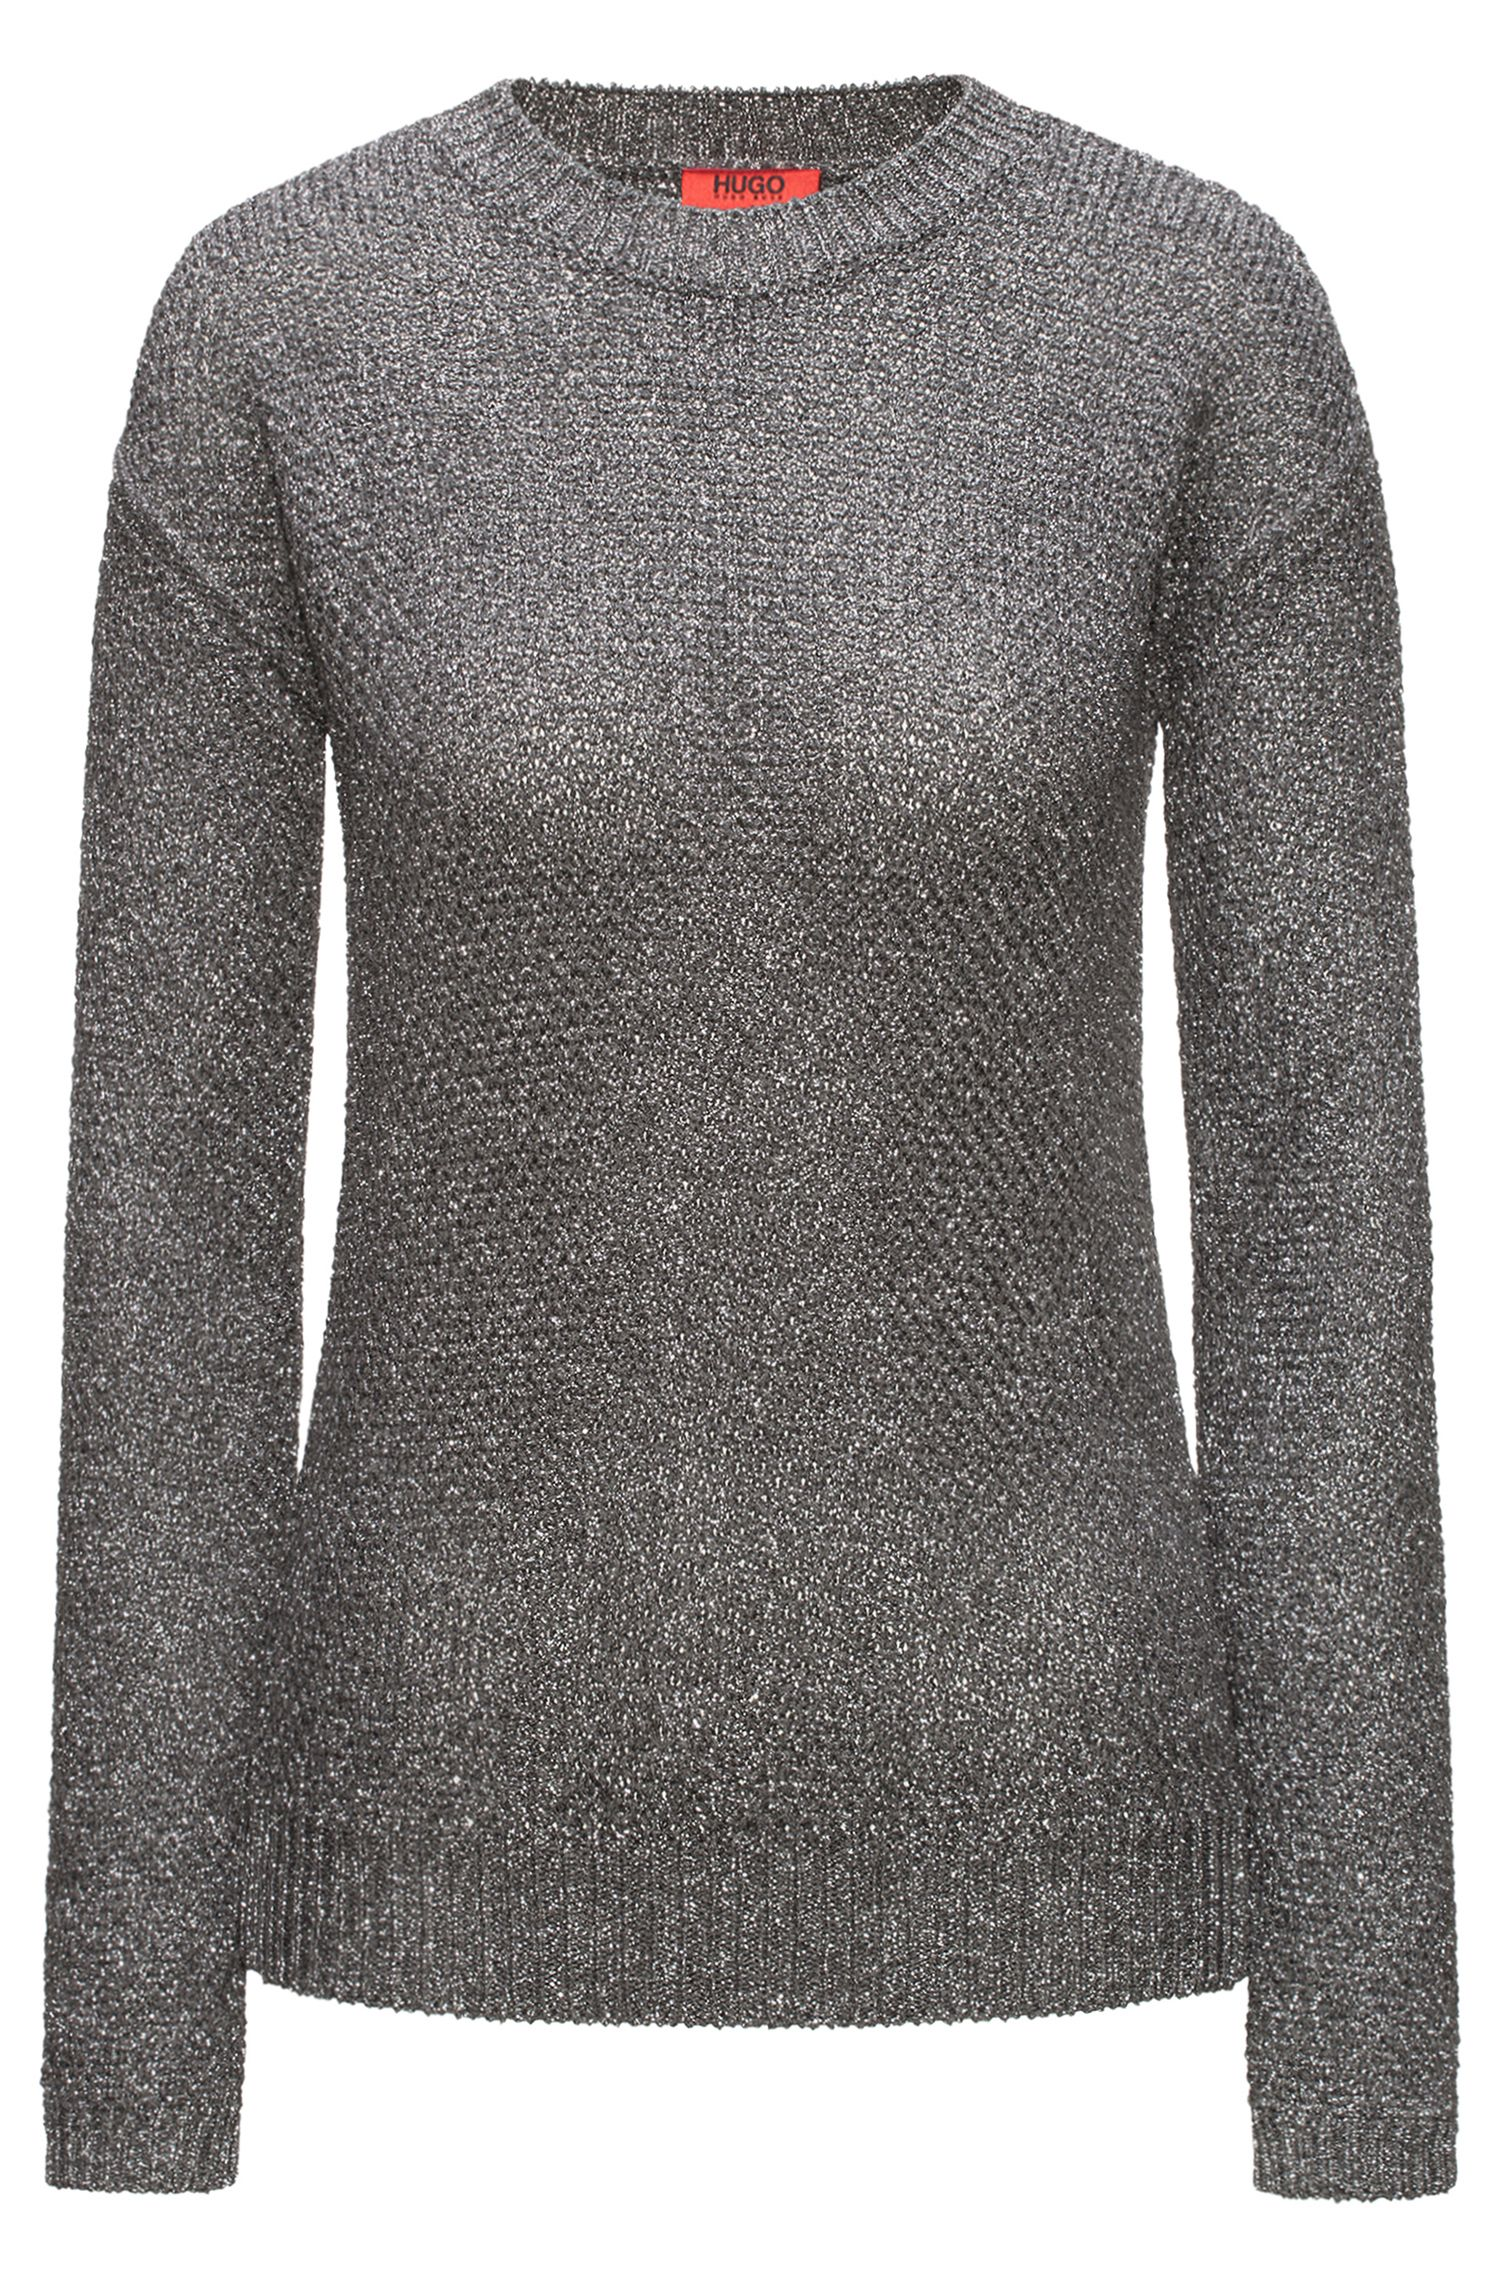 Crew-neck honeycomb-knit sweater with a touch of sparkle